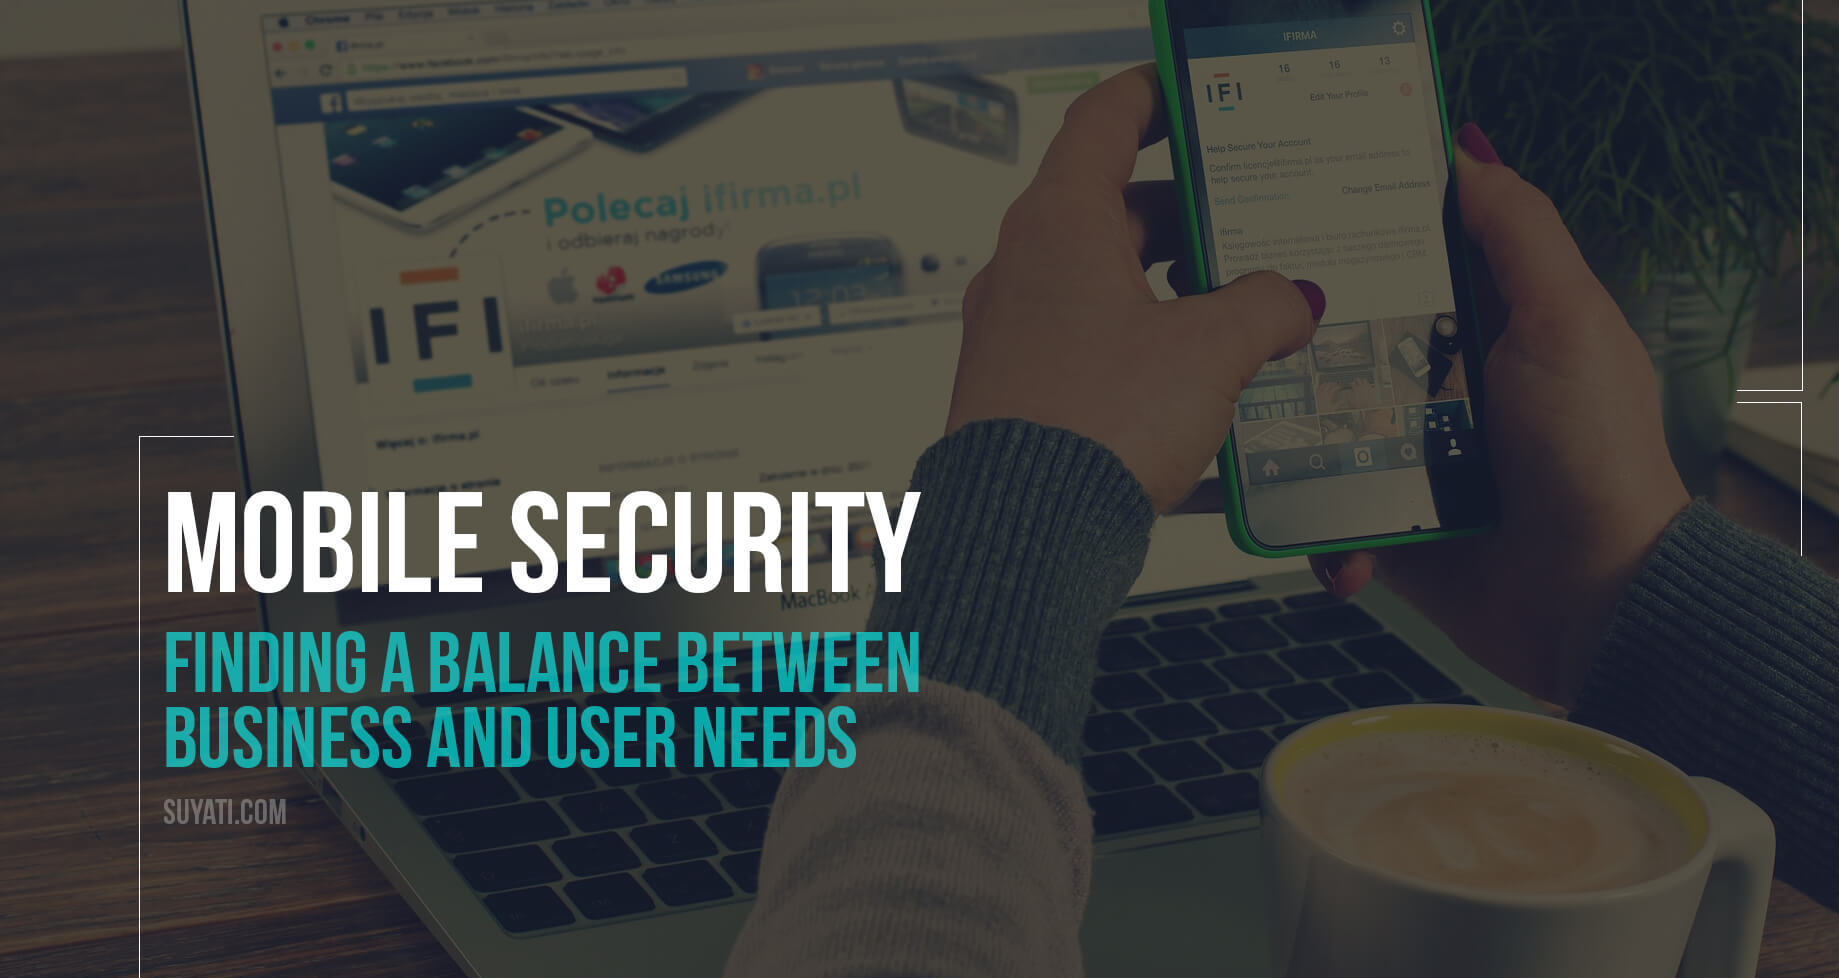 mobile-security-finding-a-balance-between-business-and-user-needs-1